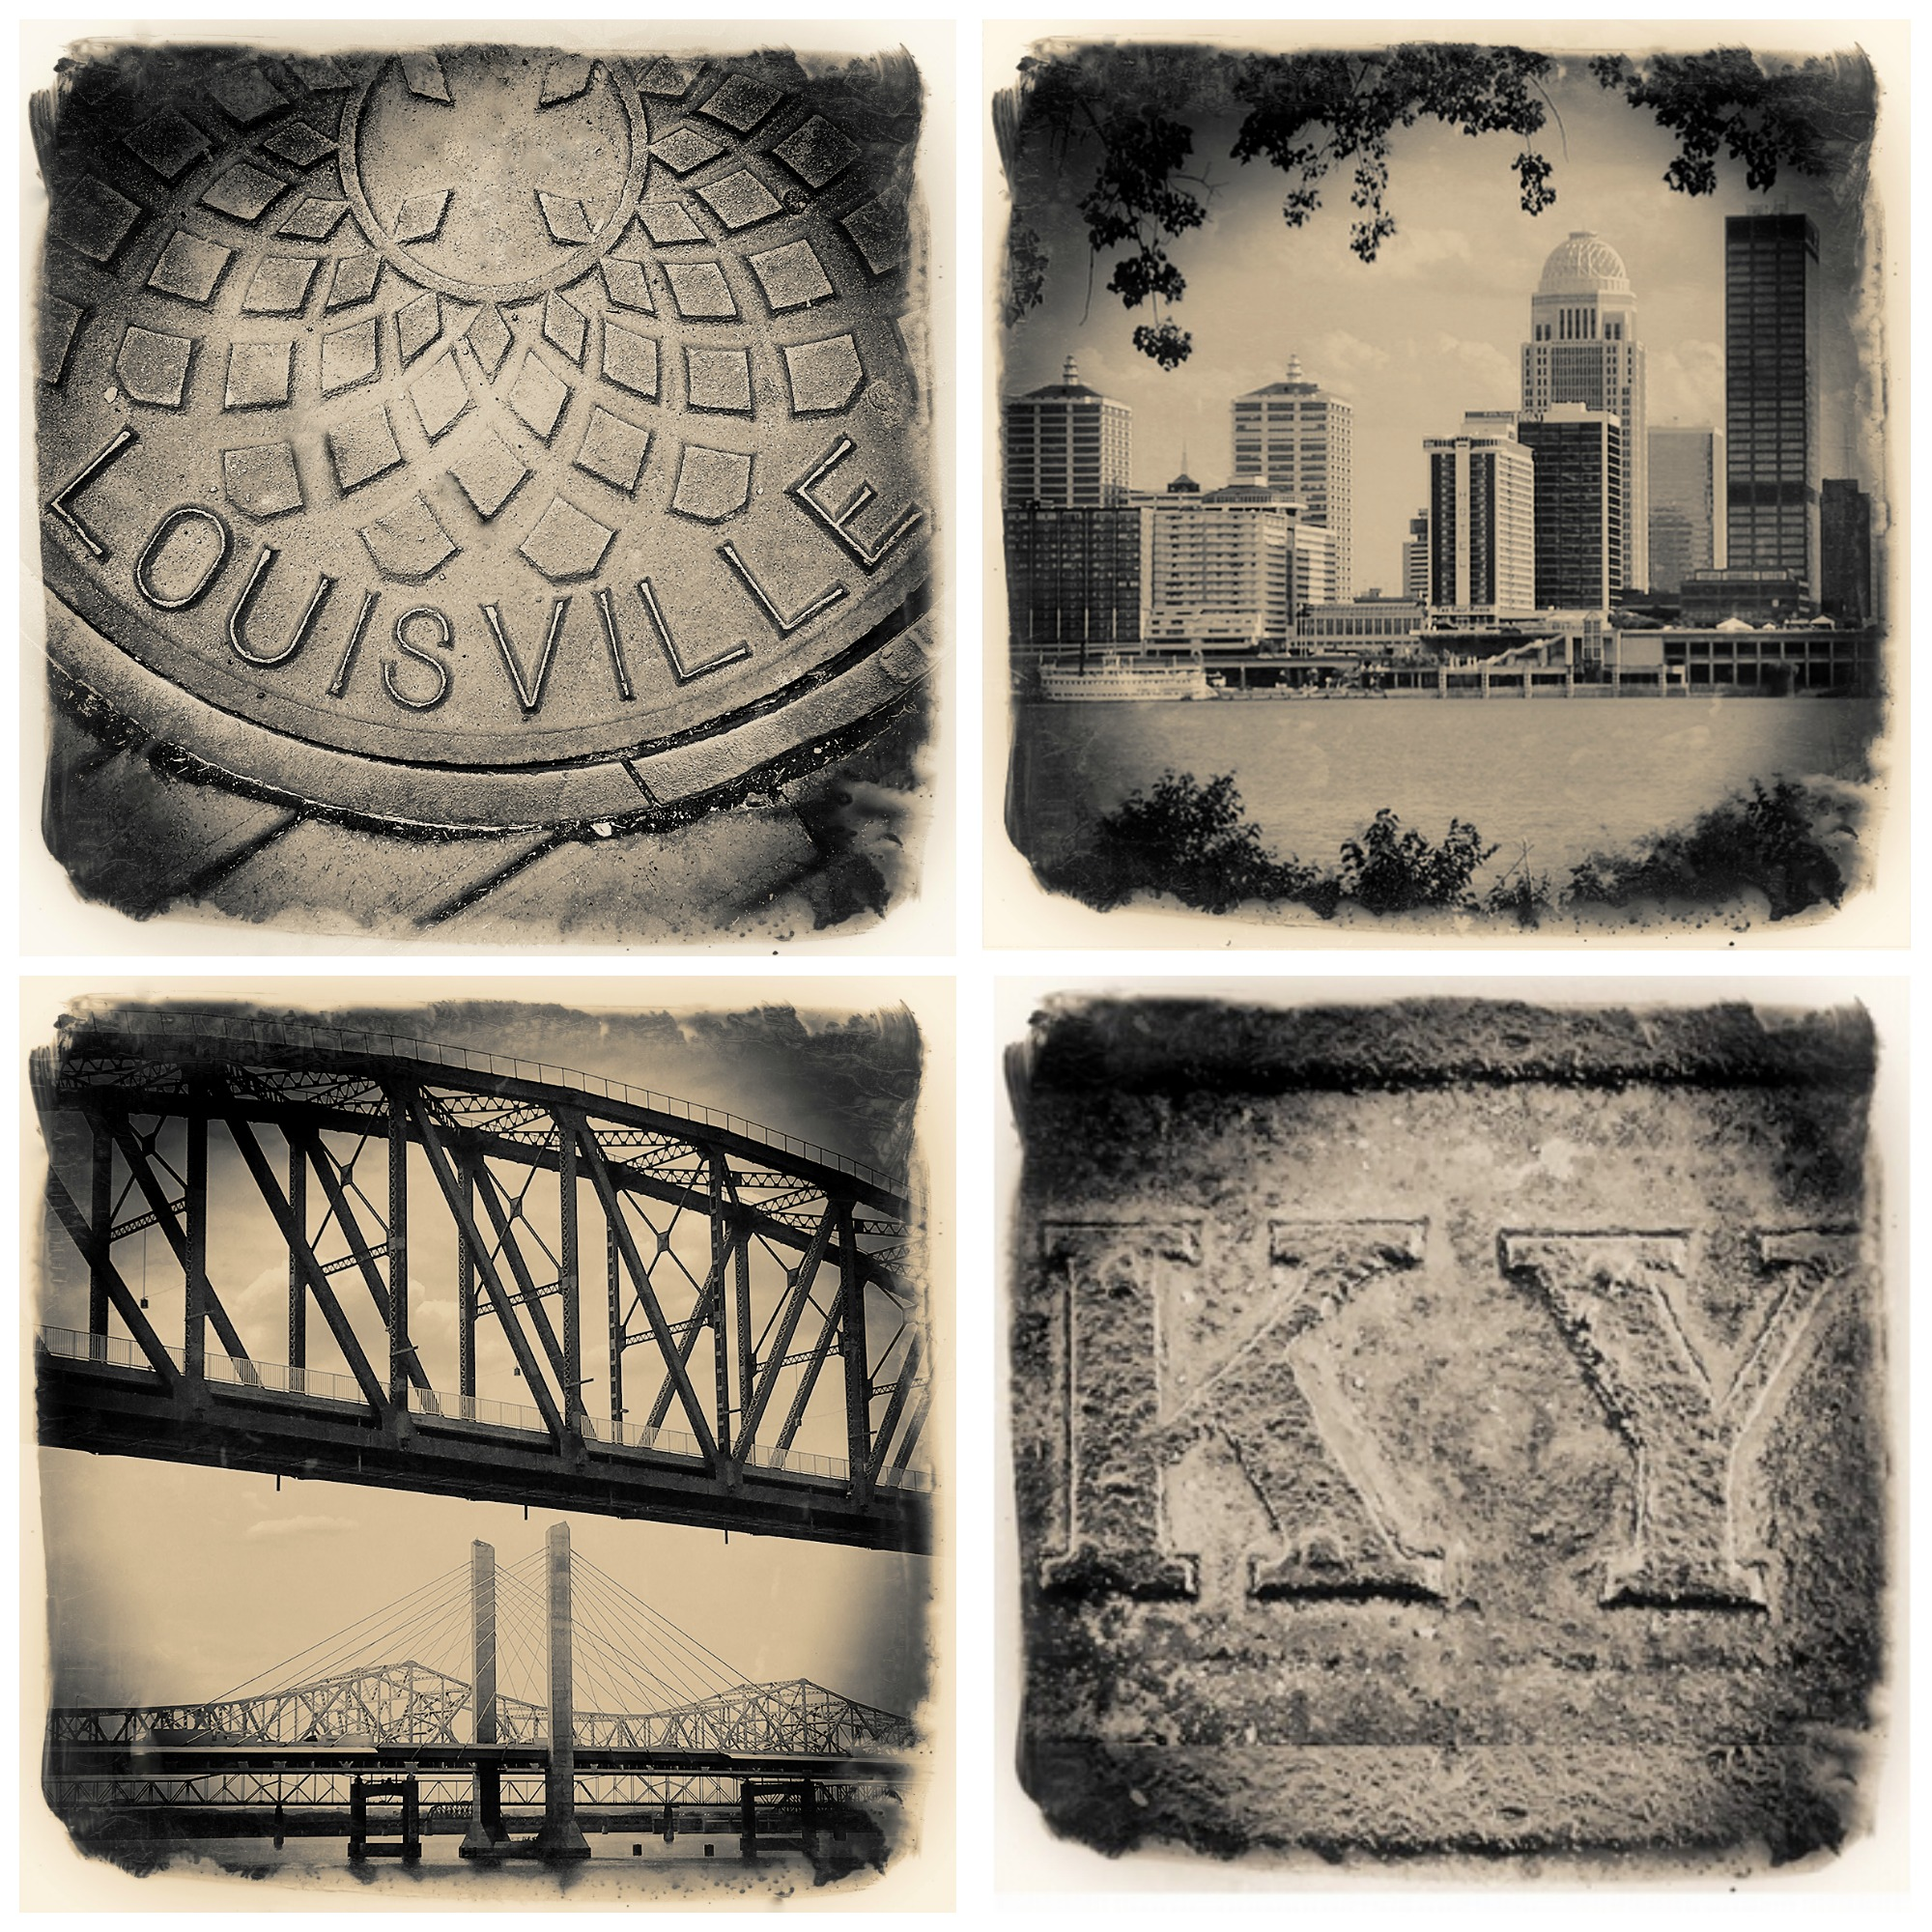 LouisvilleCollage.jpg